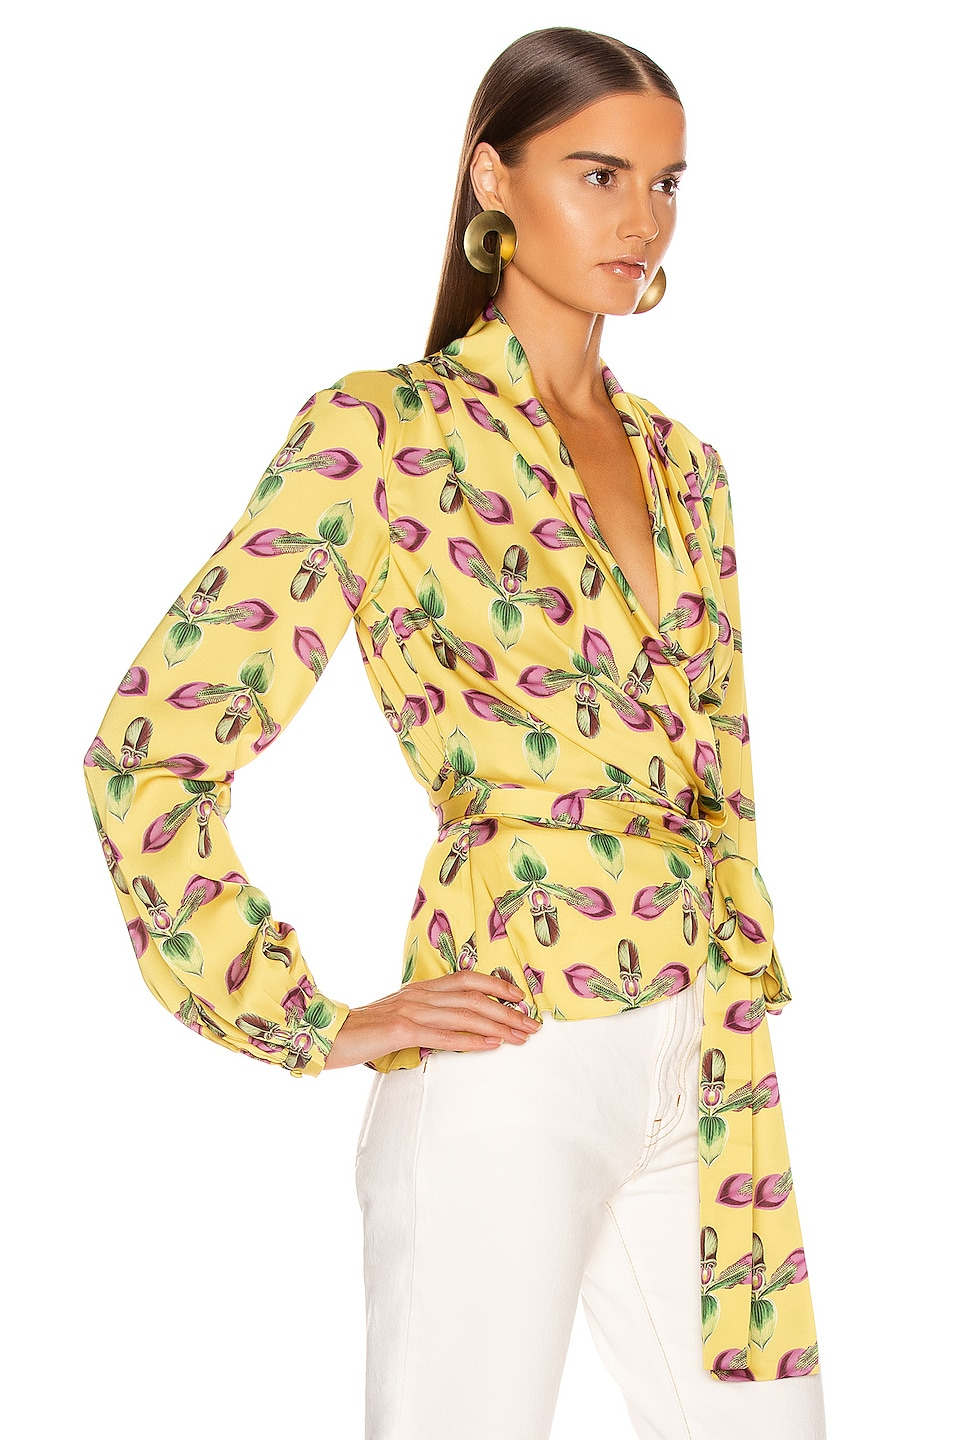 Image 2 of PatBo Floral Print Wrap Top in Bright Yellow